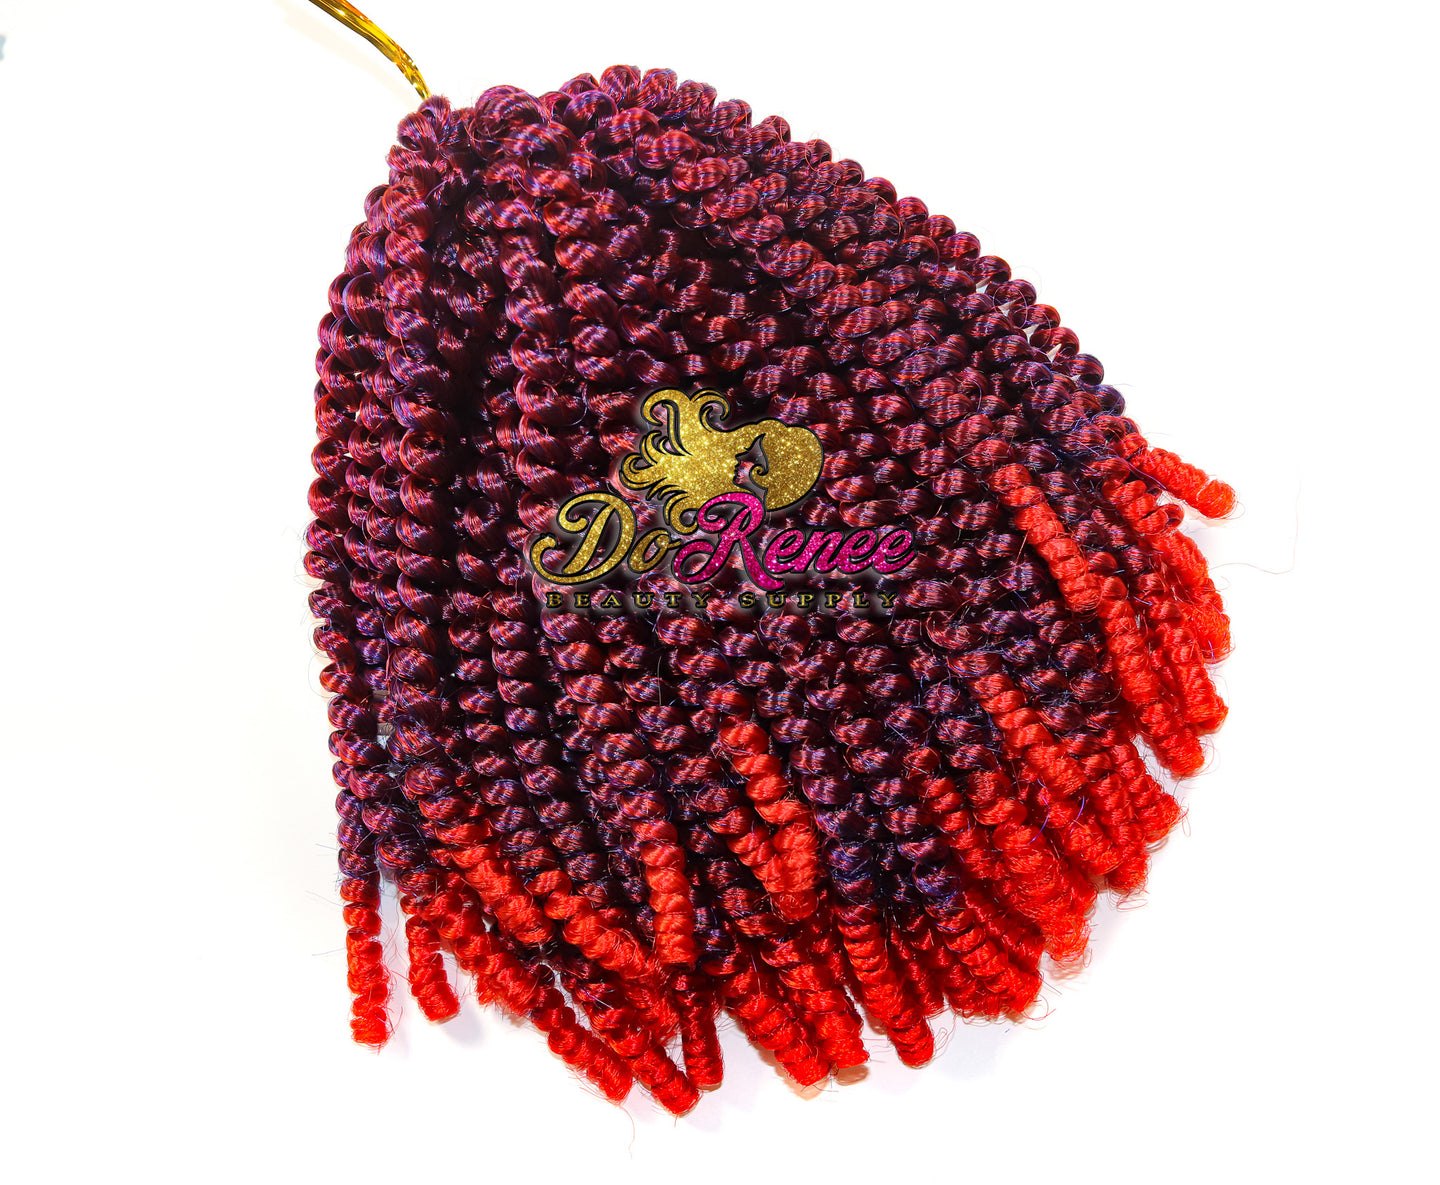 Spring Twist Hair 8inch Color Raspy Red (TPurpleRed) (UNTWISTED)